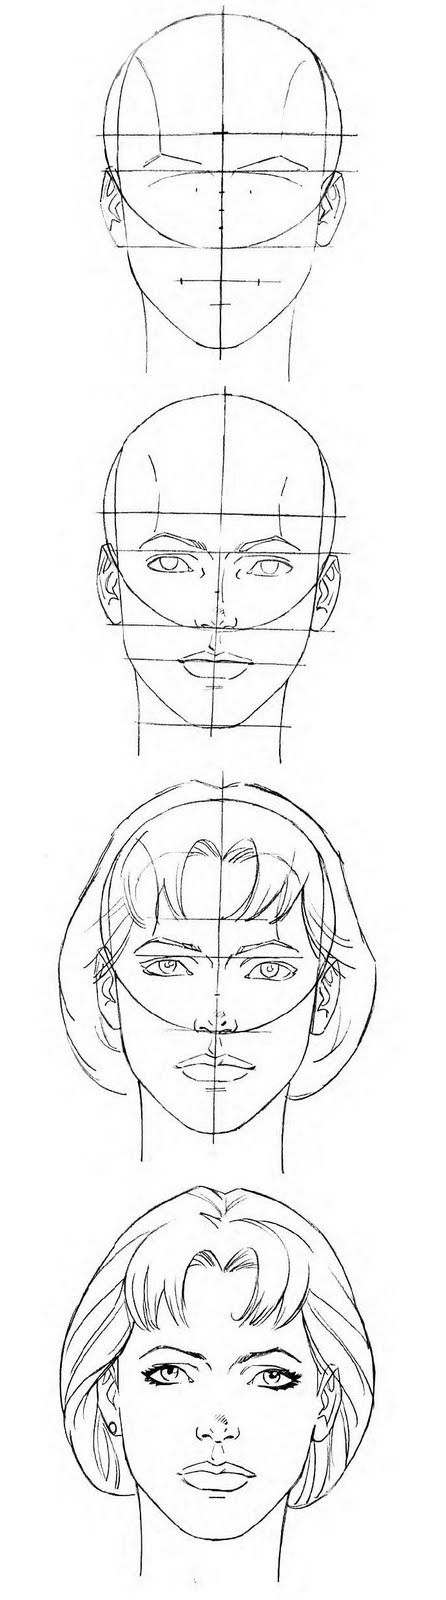 Female Head proportions template/reference // follow me on instagram: @itsjohnreid